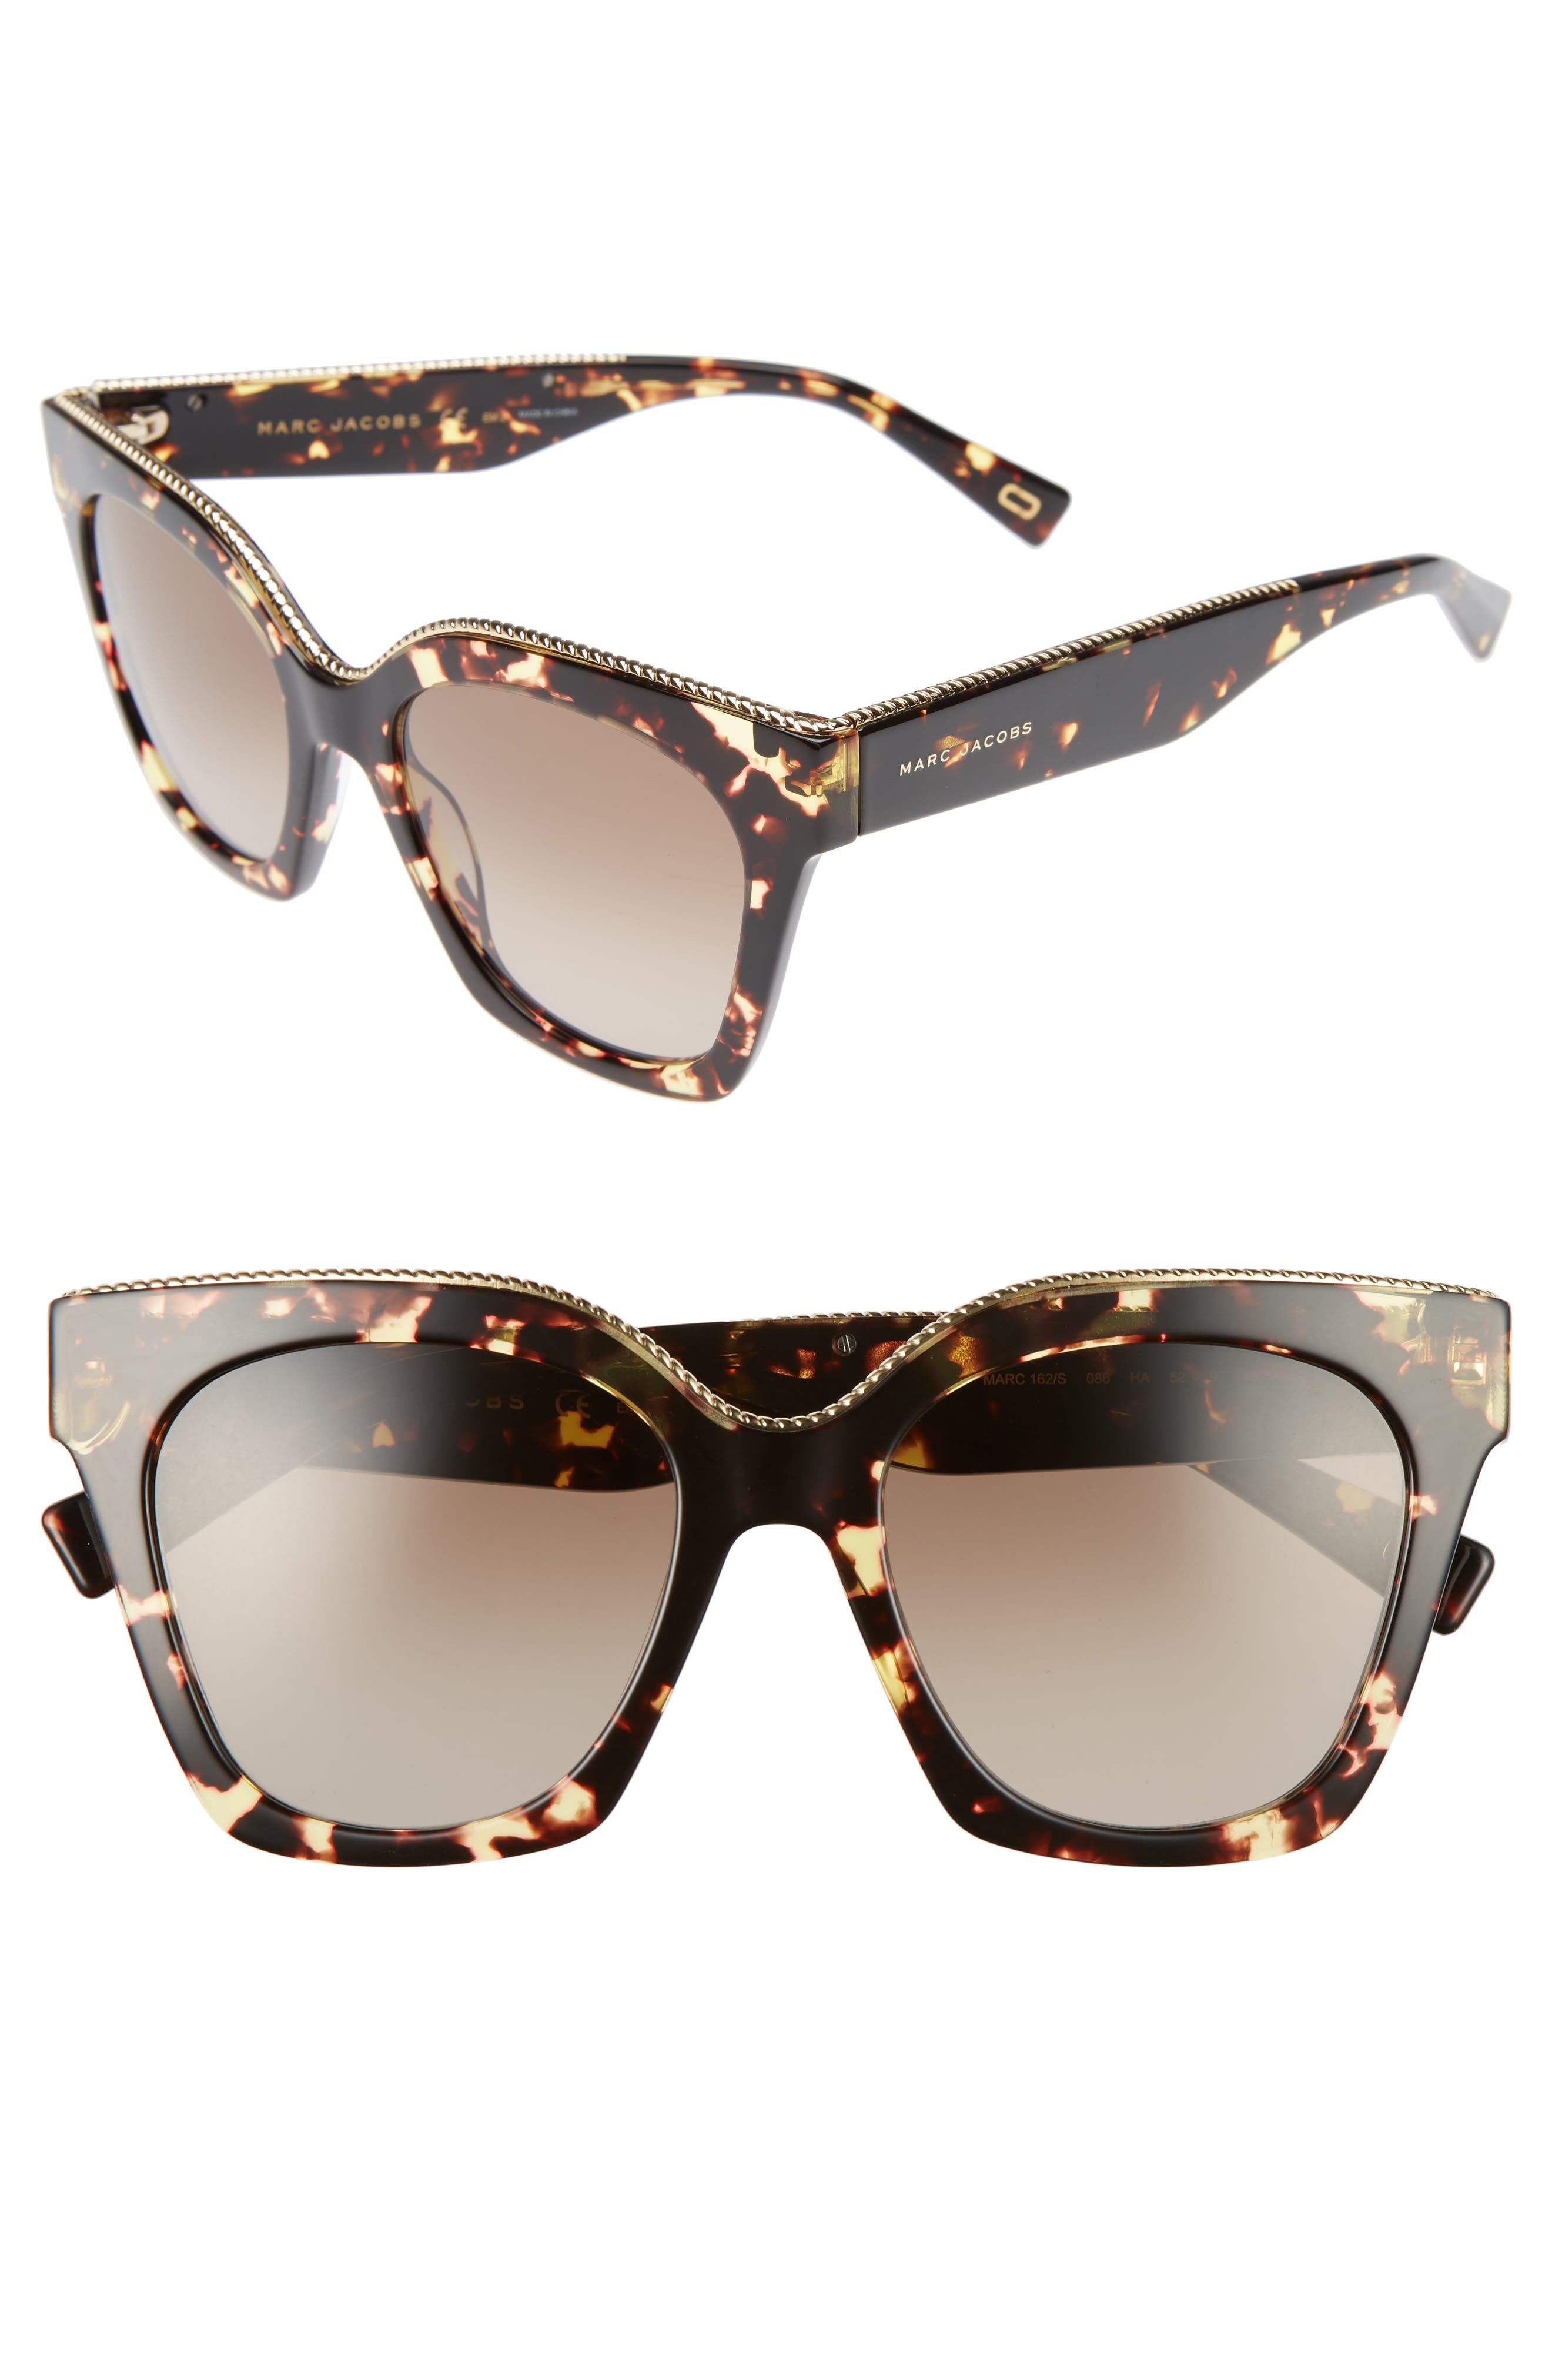 Alternate Image 1 Selected - MARC JACOBS 52mm Square Sunglasses